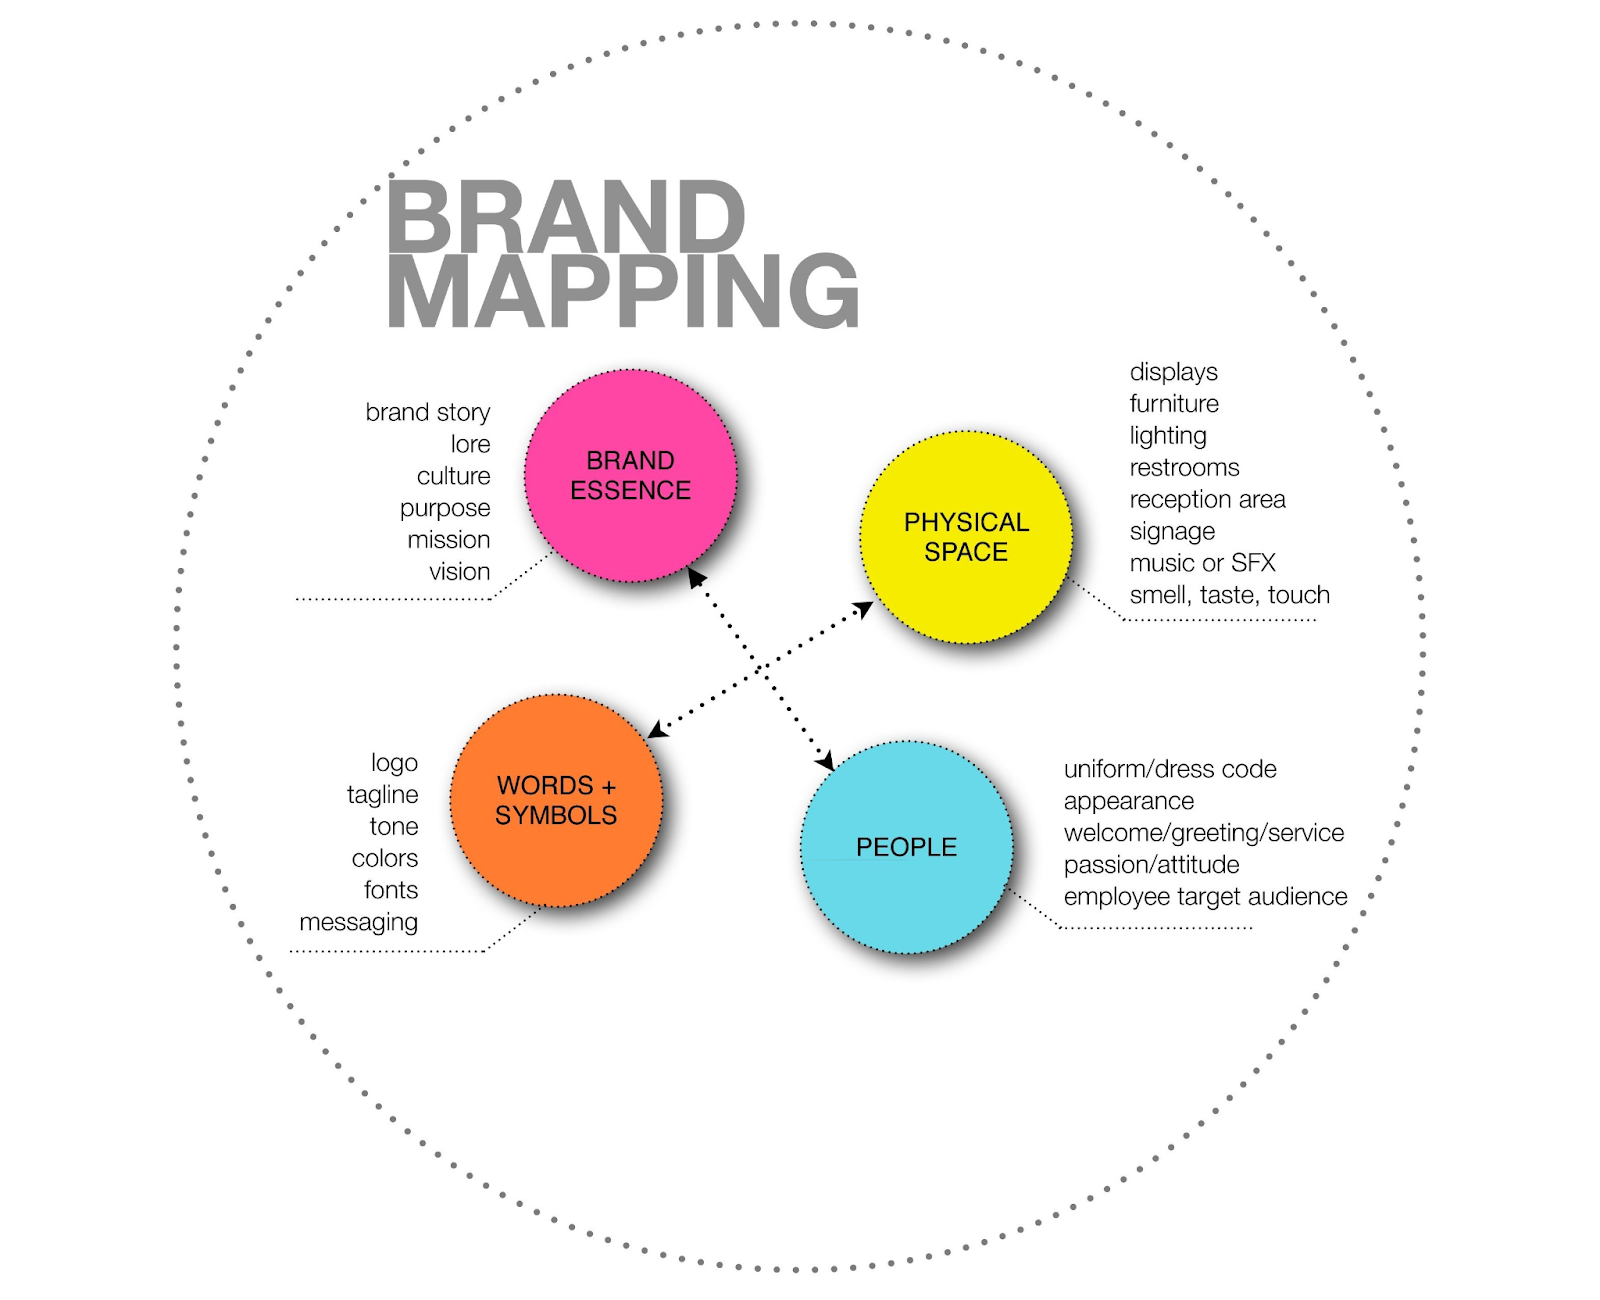 Brand Mapping image